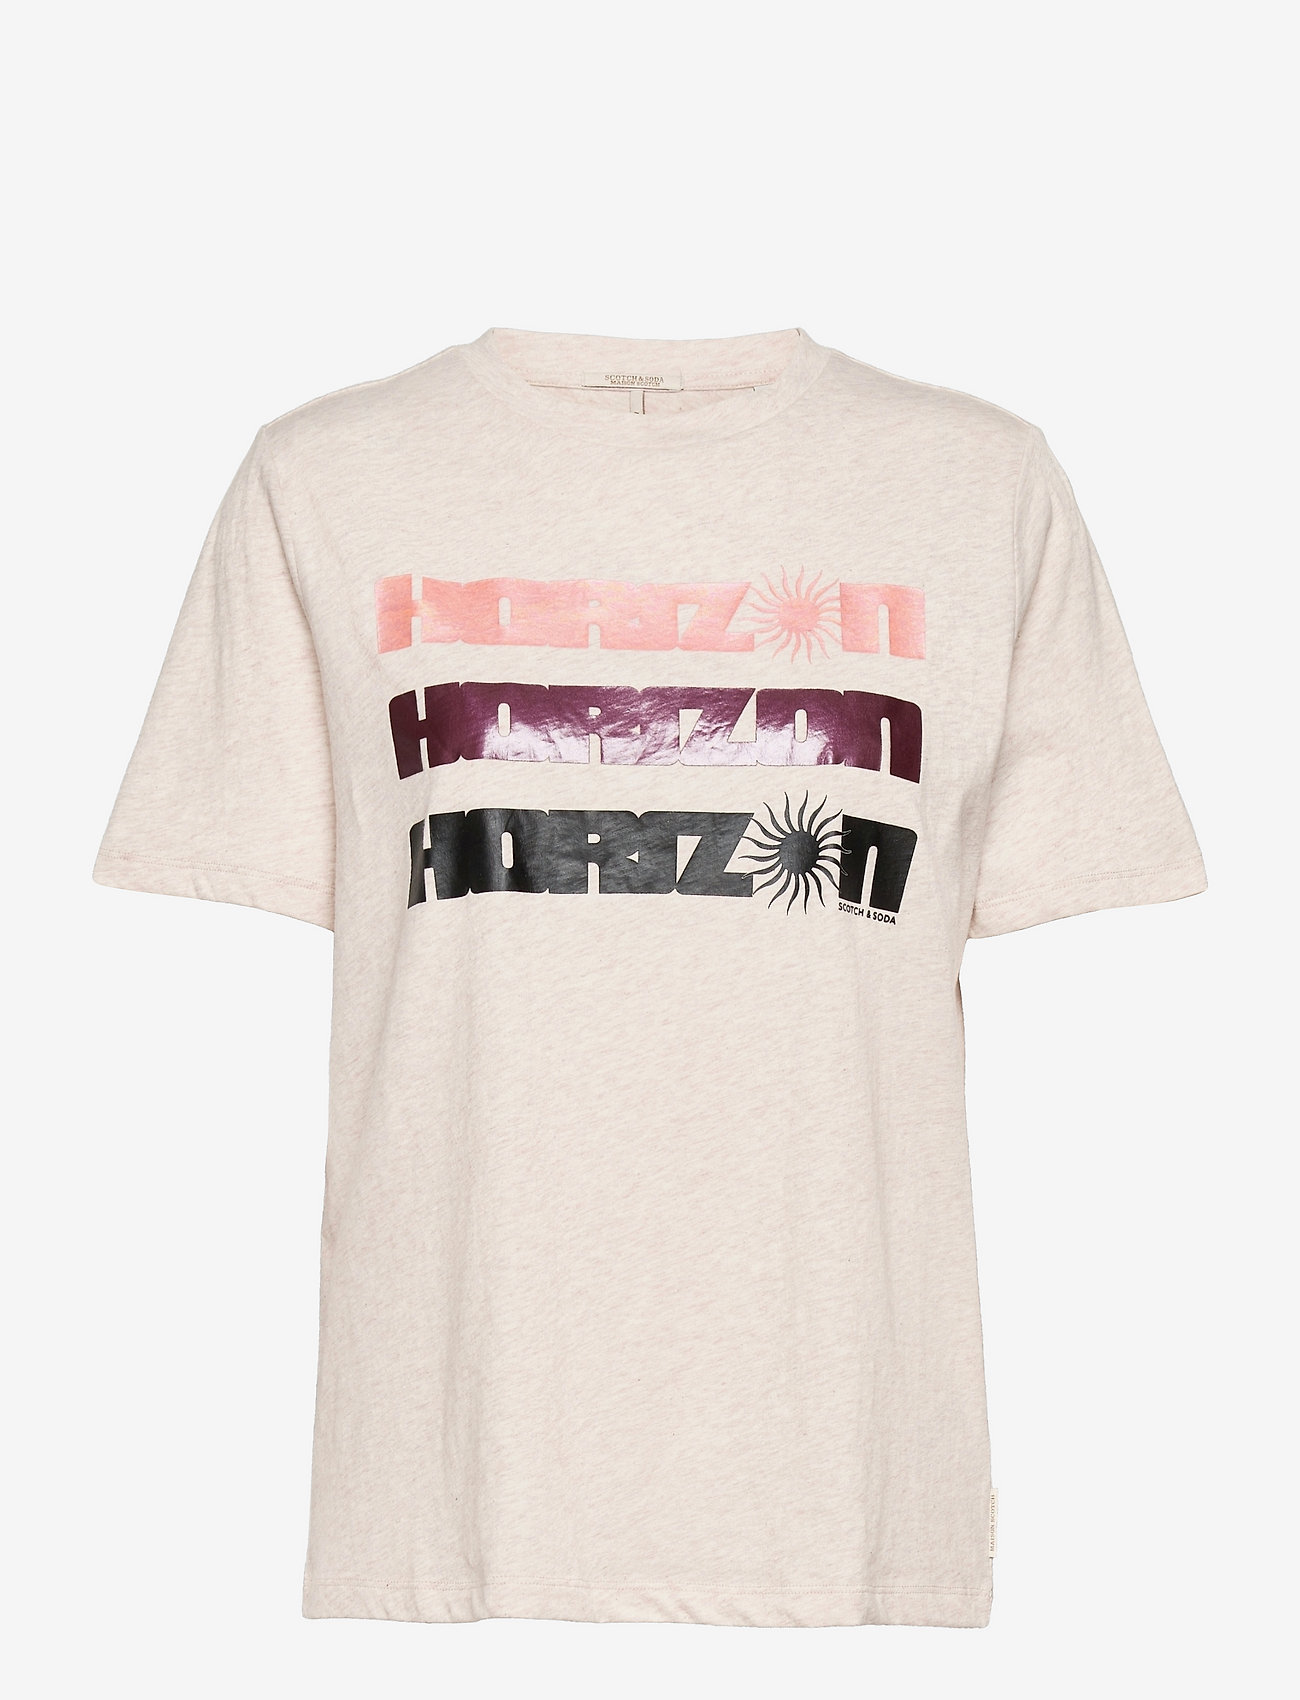 Scotch & Soda - Organic cotton tee with graphic - t-shirts - off white melange - 0